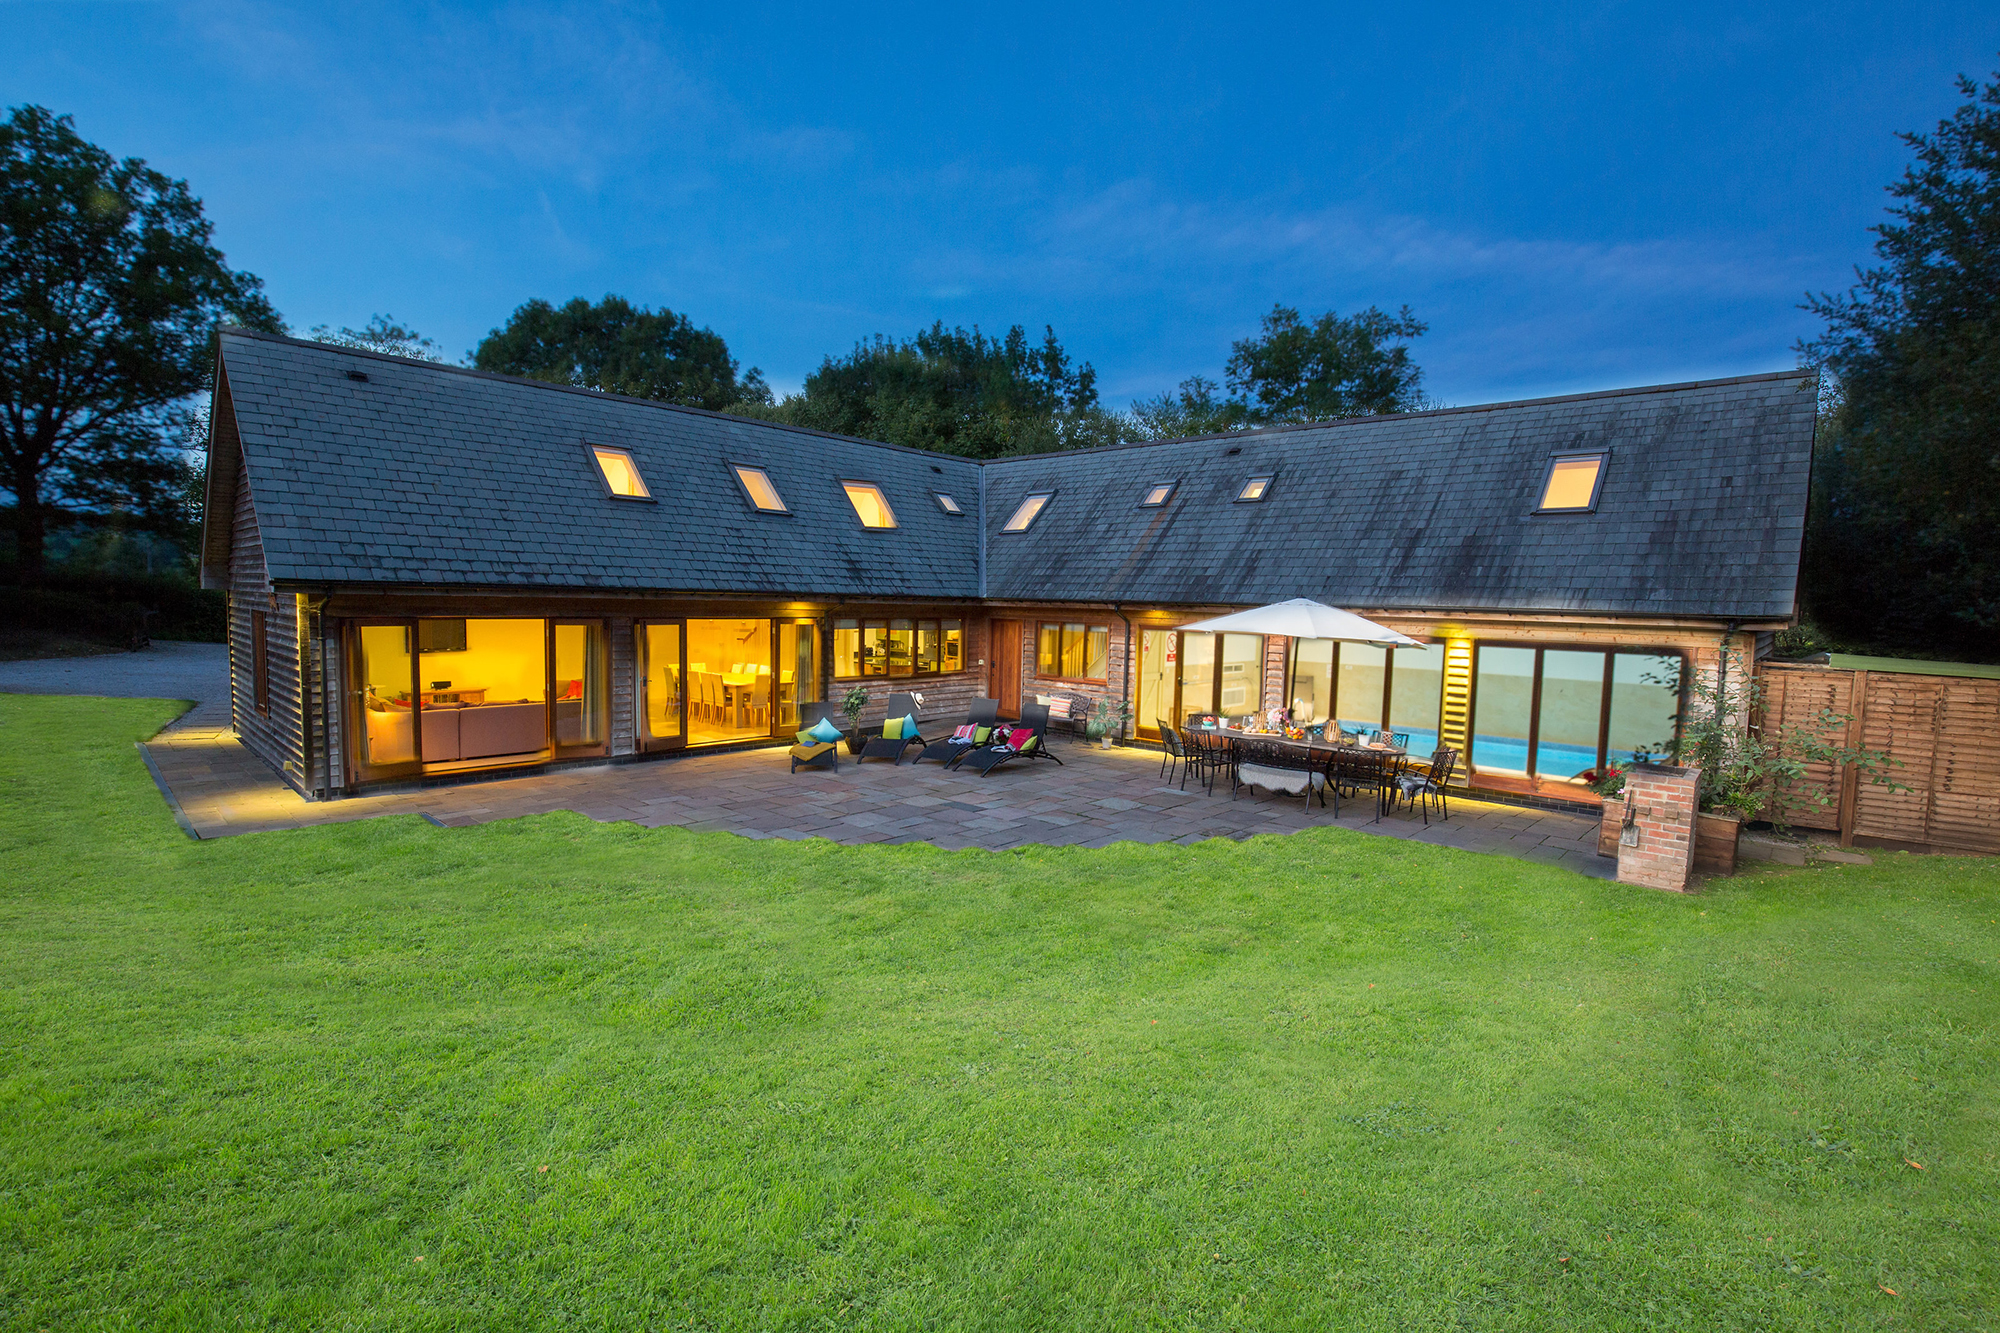 Holiday cottages with a swimming pool and barbeque  in West Country